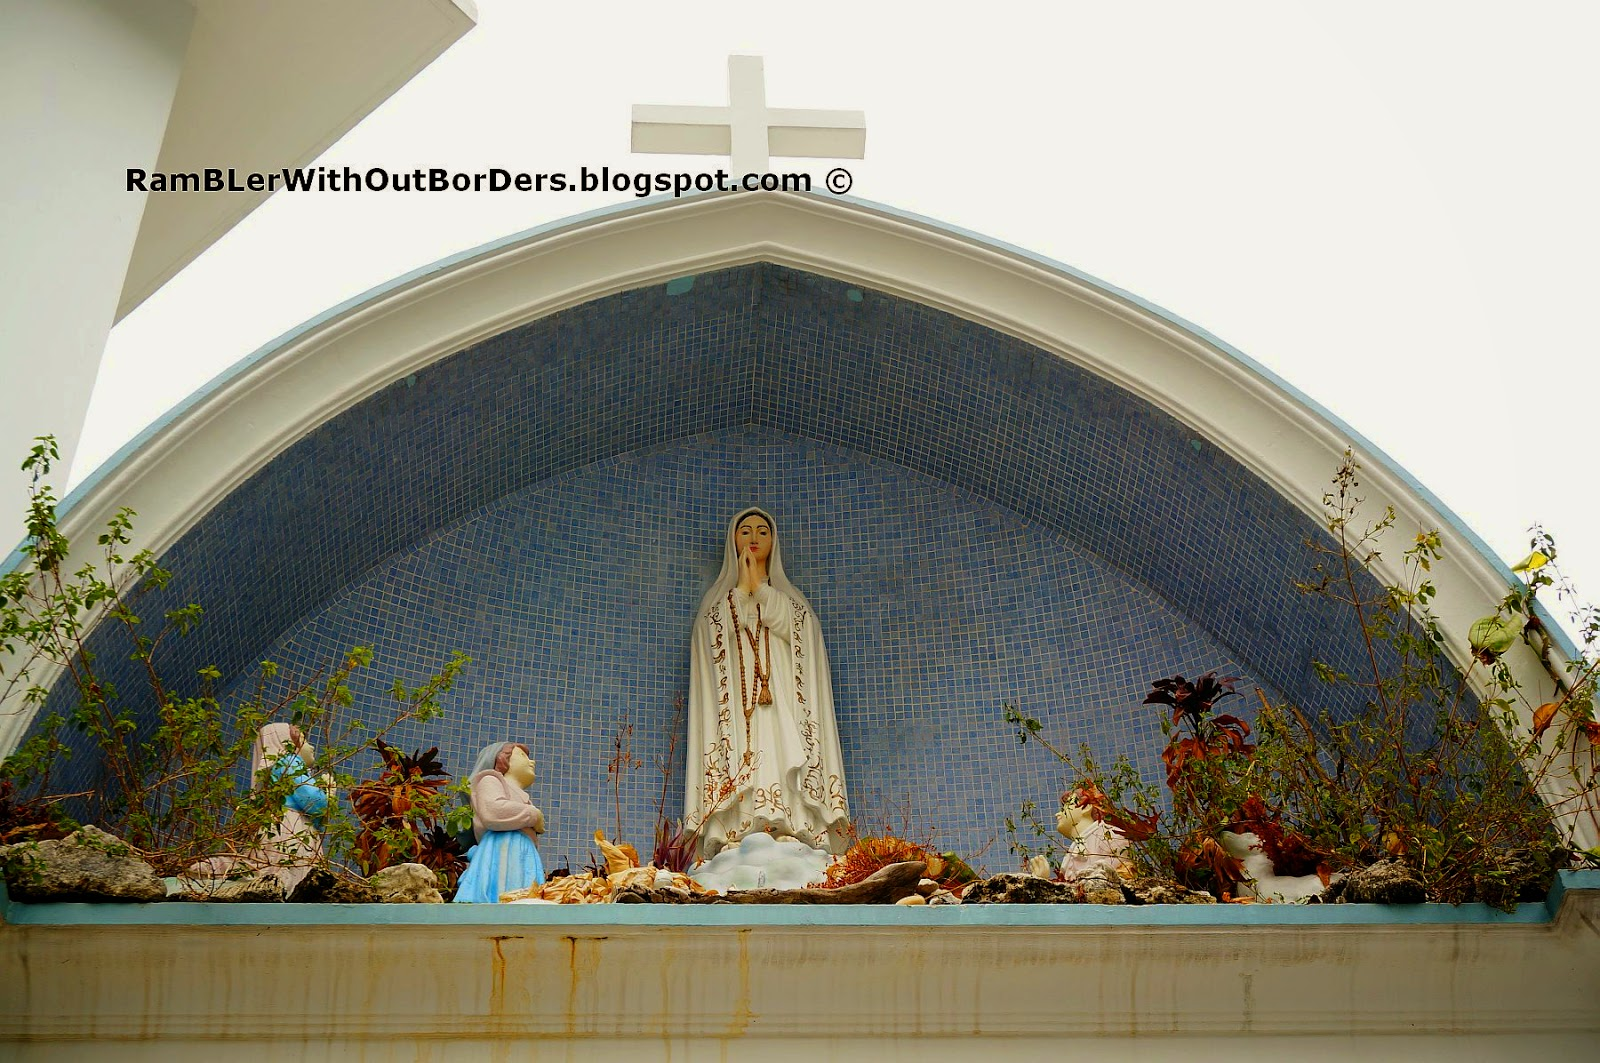 Outdoor Shrine, Our Lady of Fatima, St Joseph's Church, Victoria St, Singapore